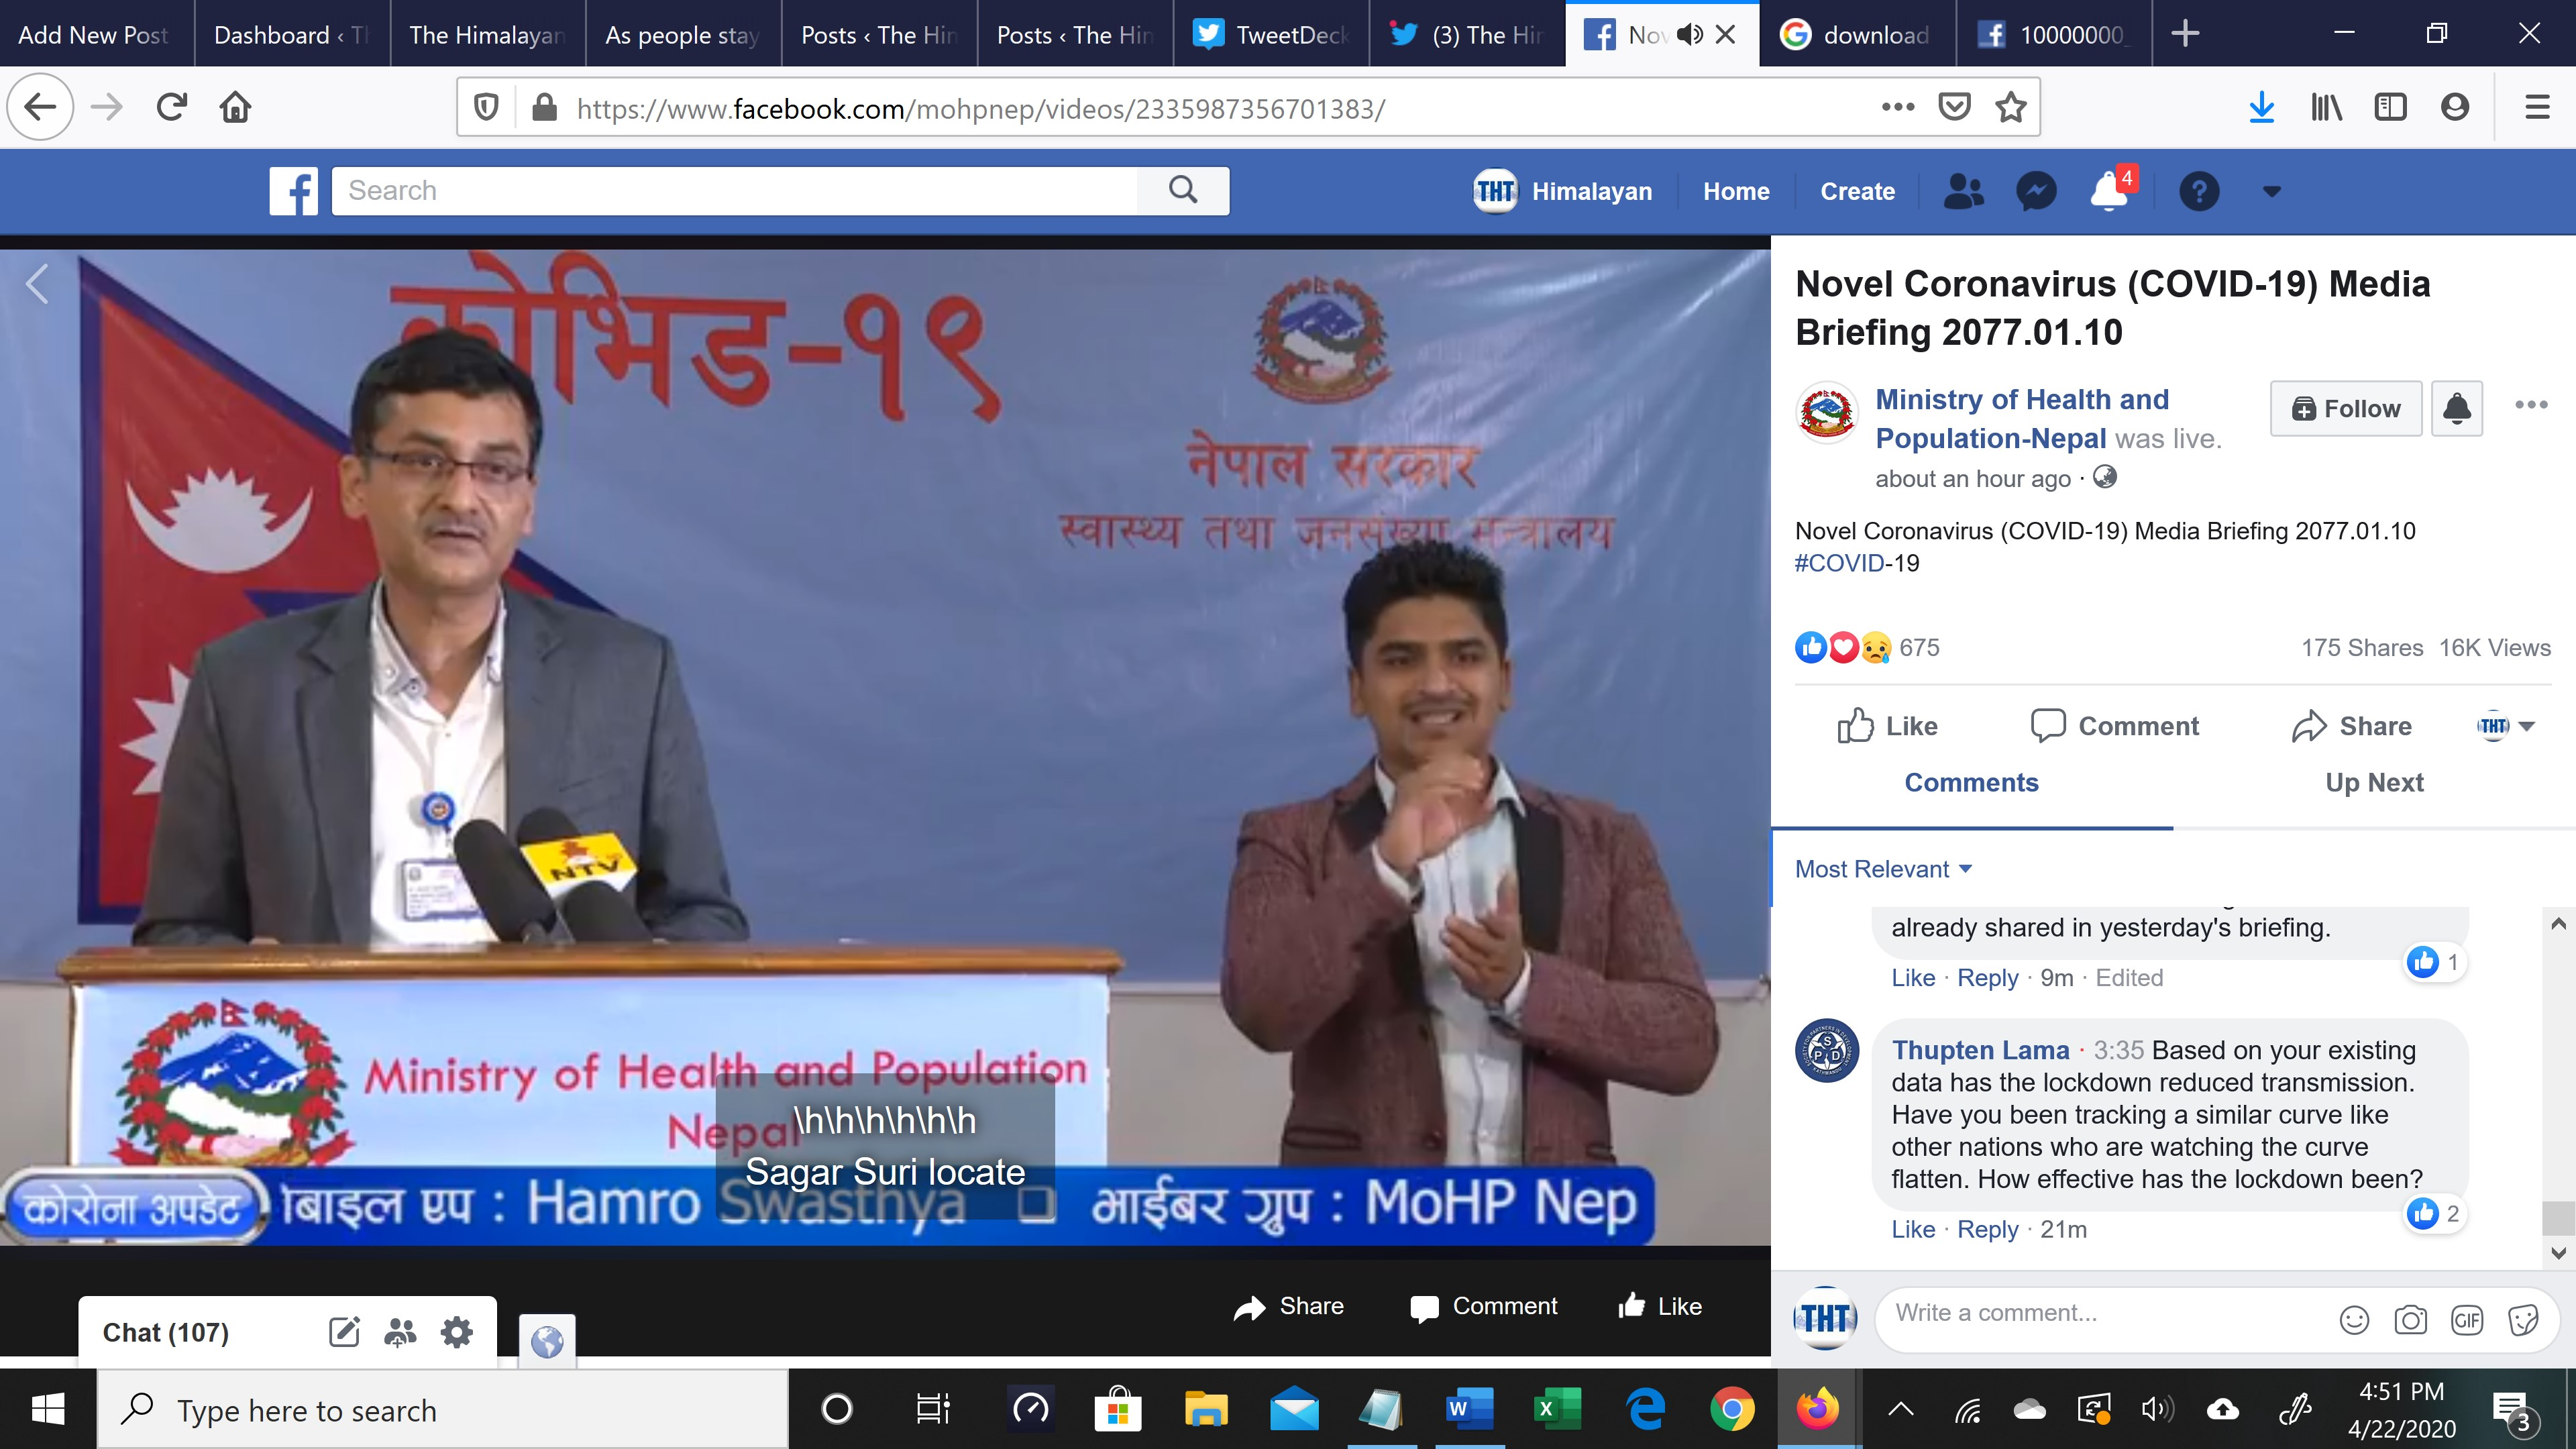 A screenshot of media briefing on COVID-19 by the Ministry of Health and Population (MoHP), on Wednesday, April 22, 2020.